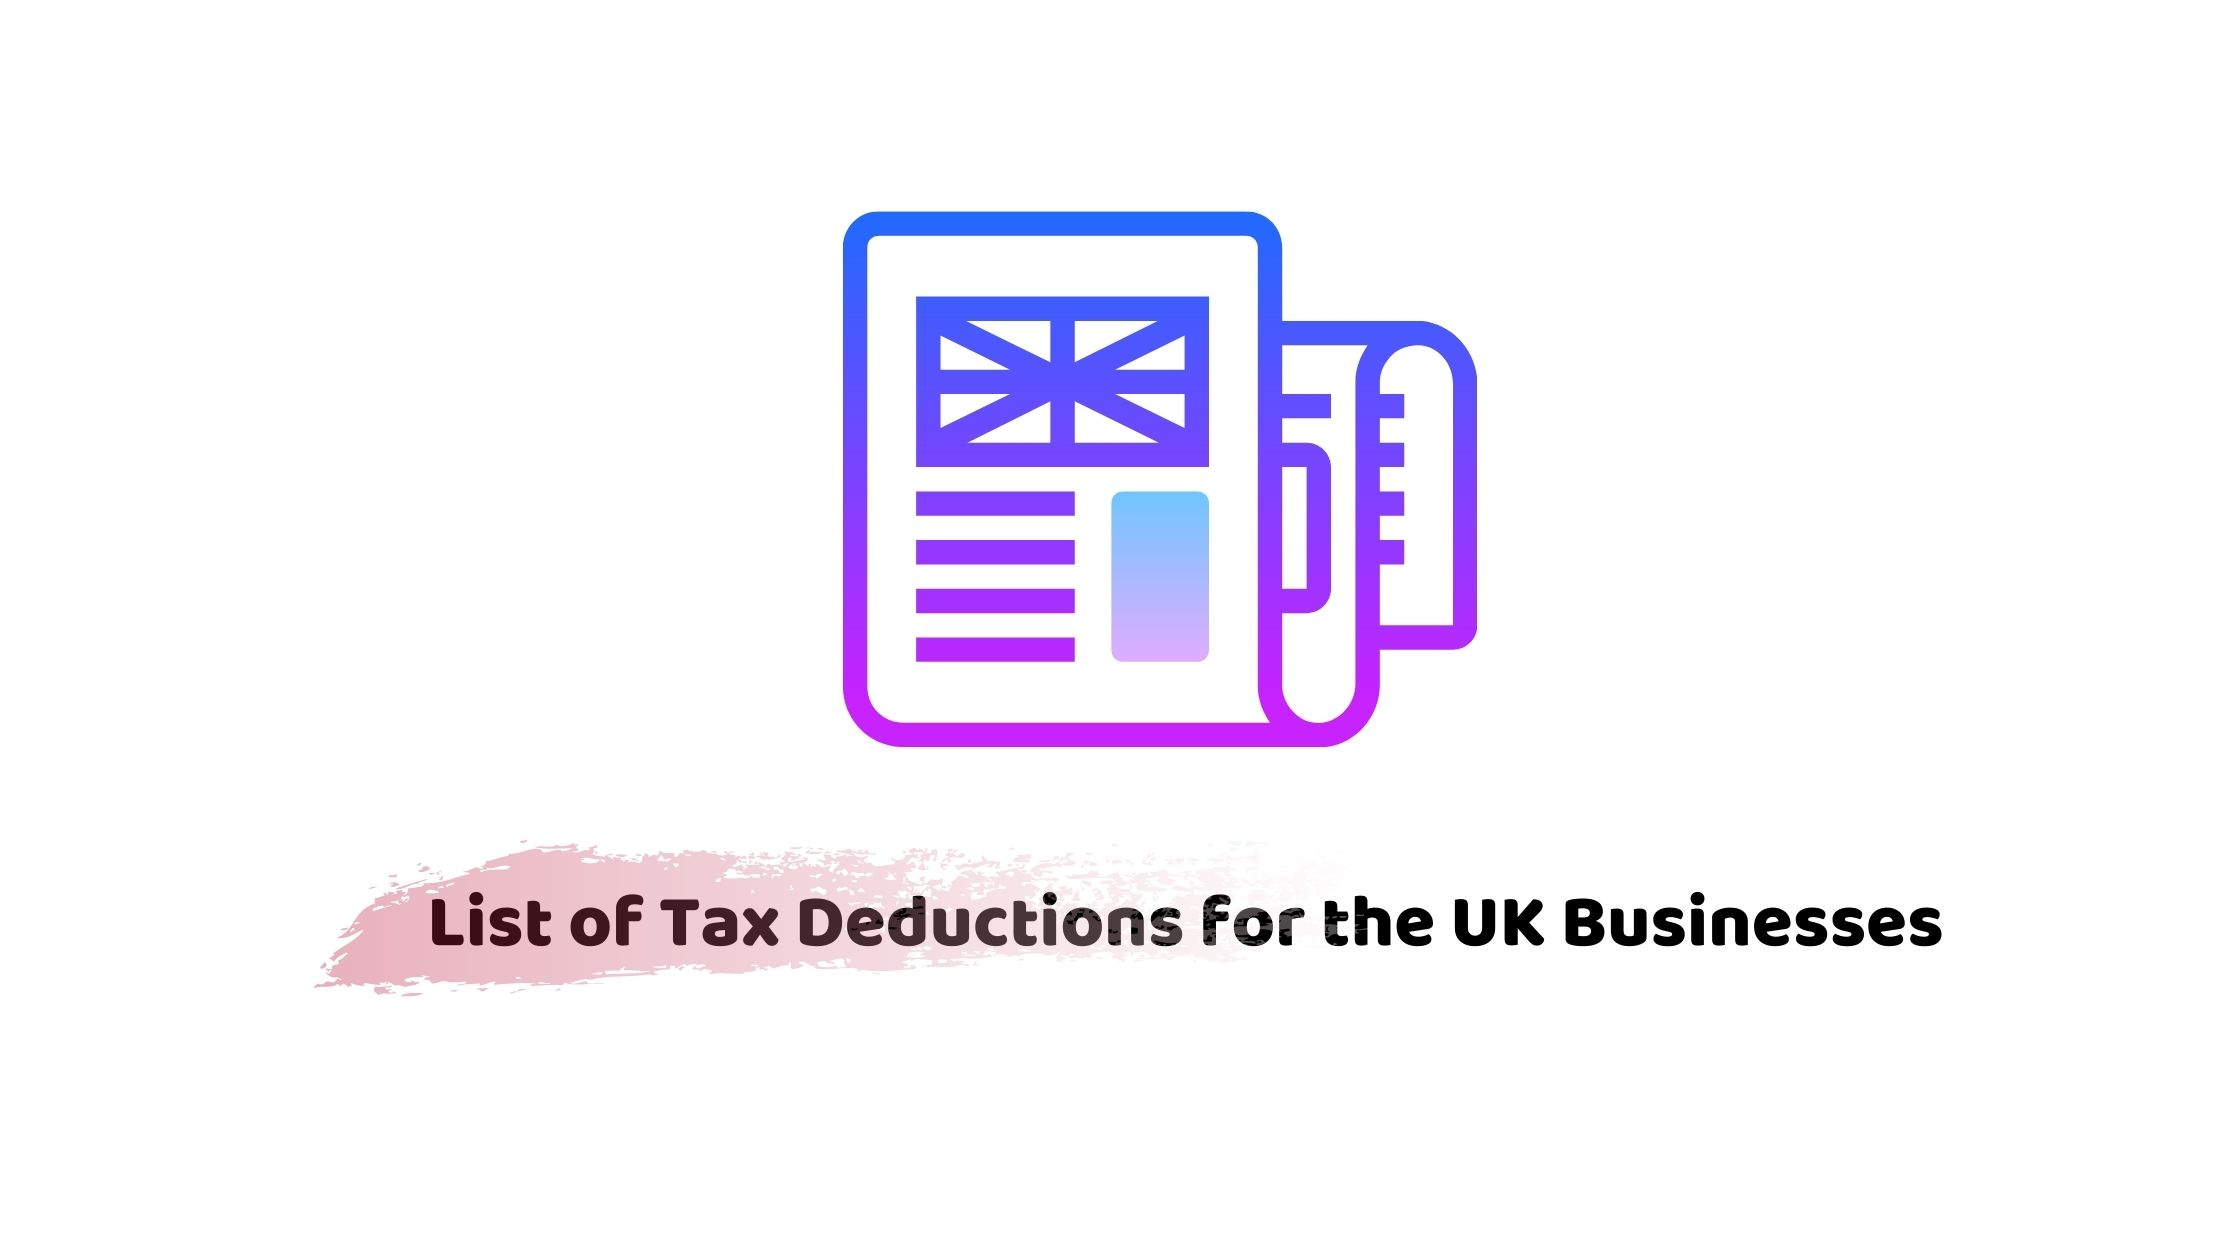 Tax Deductions for the UK Business